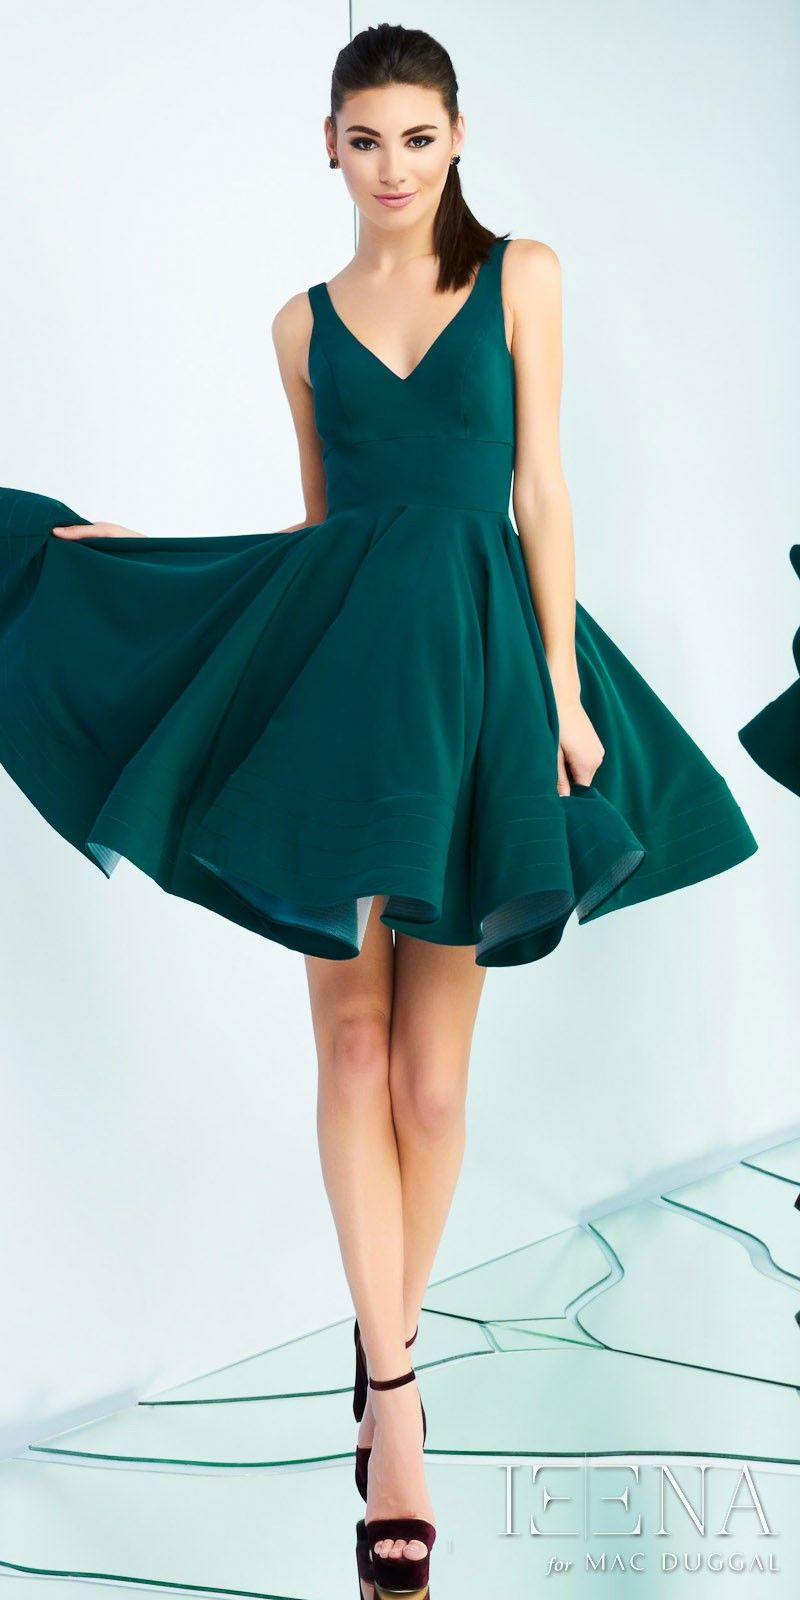 Classic fit and flare cocktail dress by ieena duggal in style